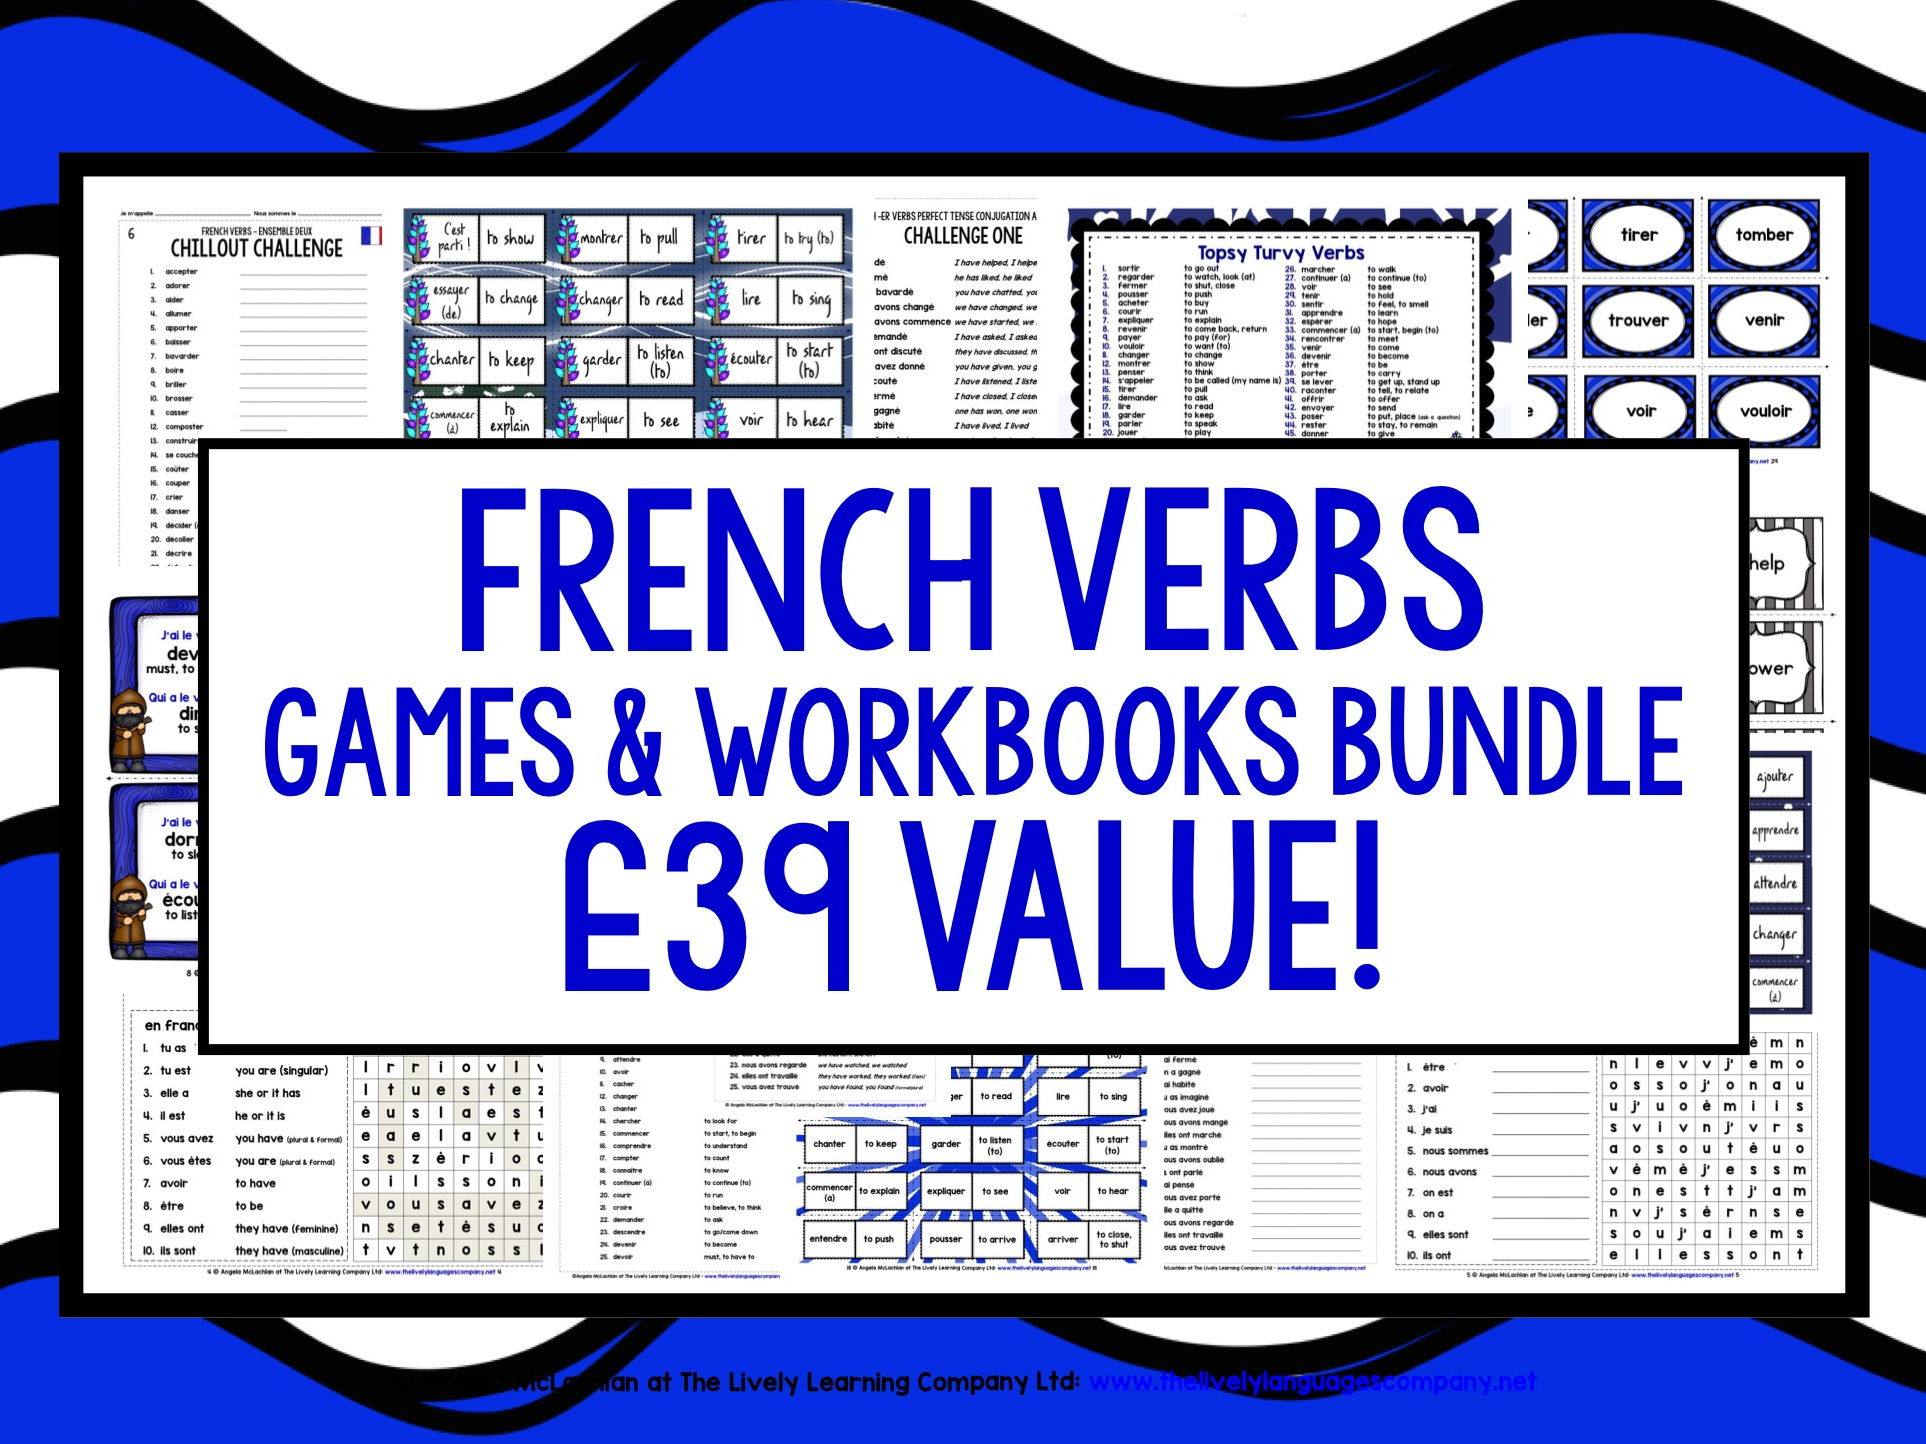 FRENCH VERBS BUNDLE (1)